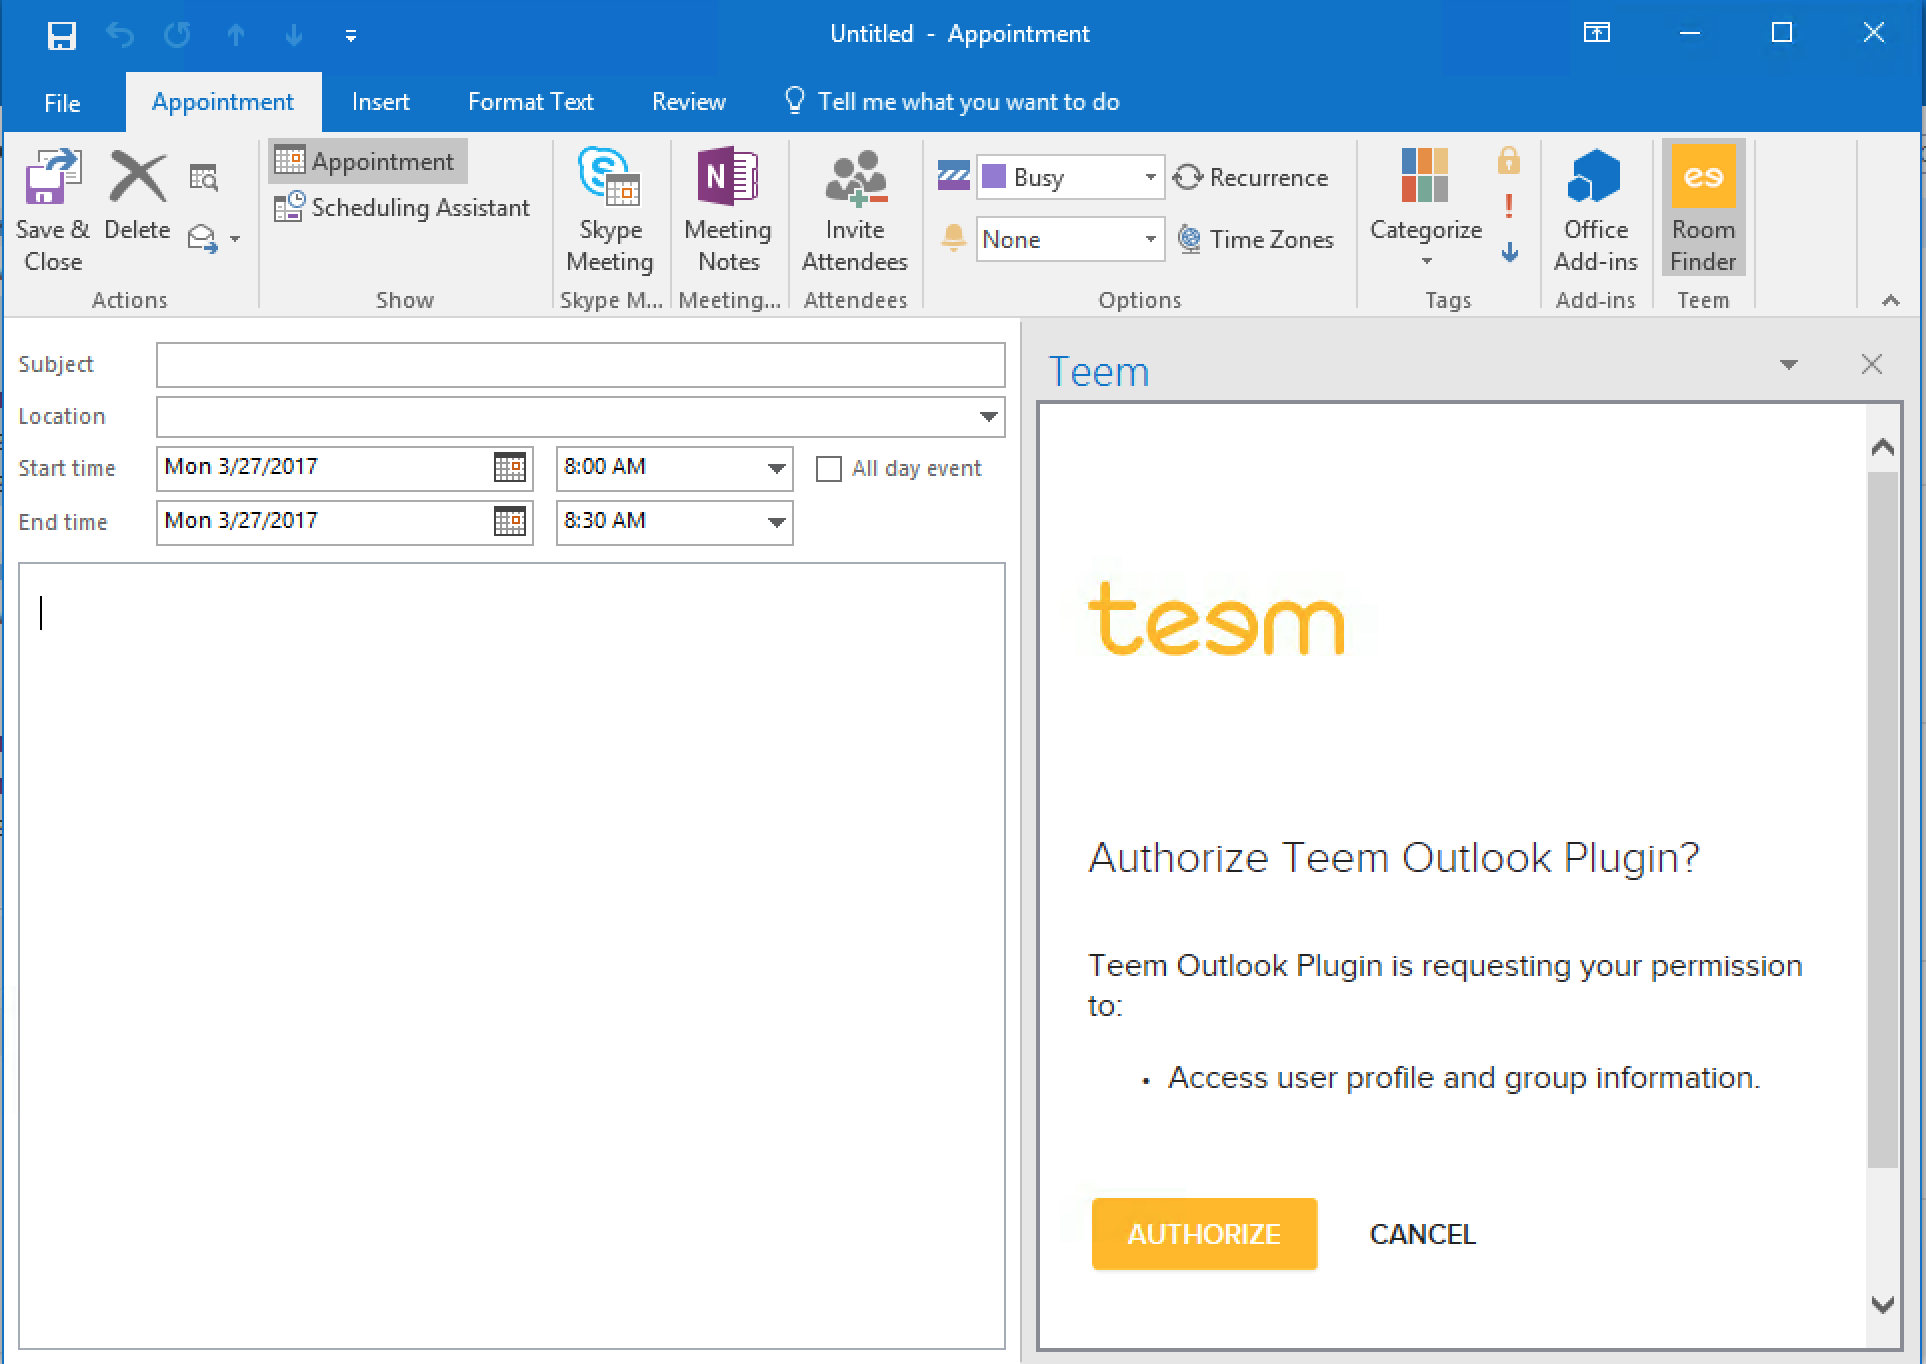 How to Use Outlook Add-in Authorzation